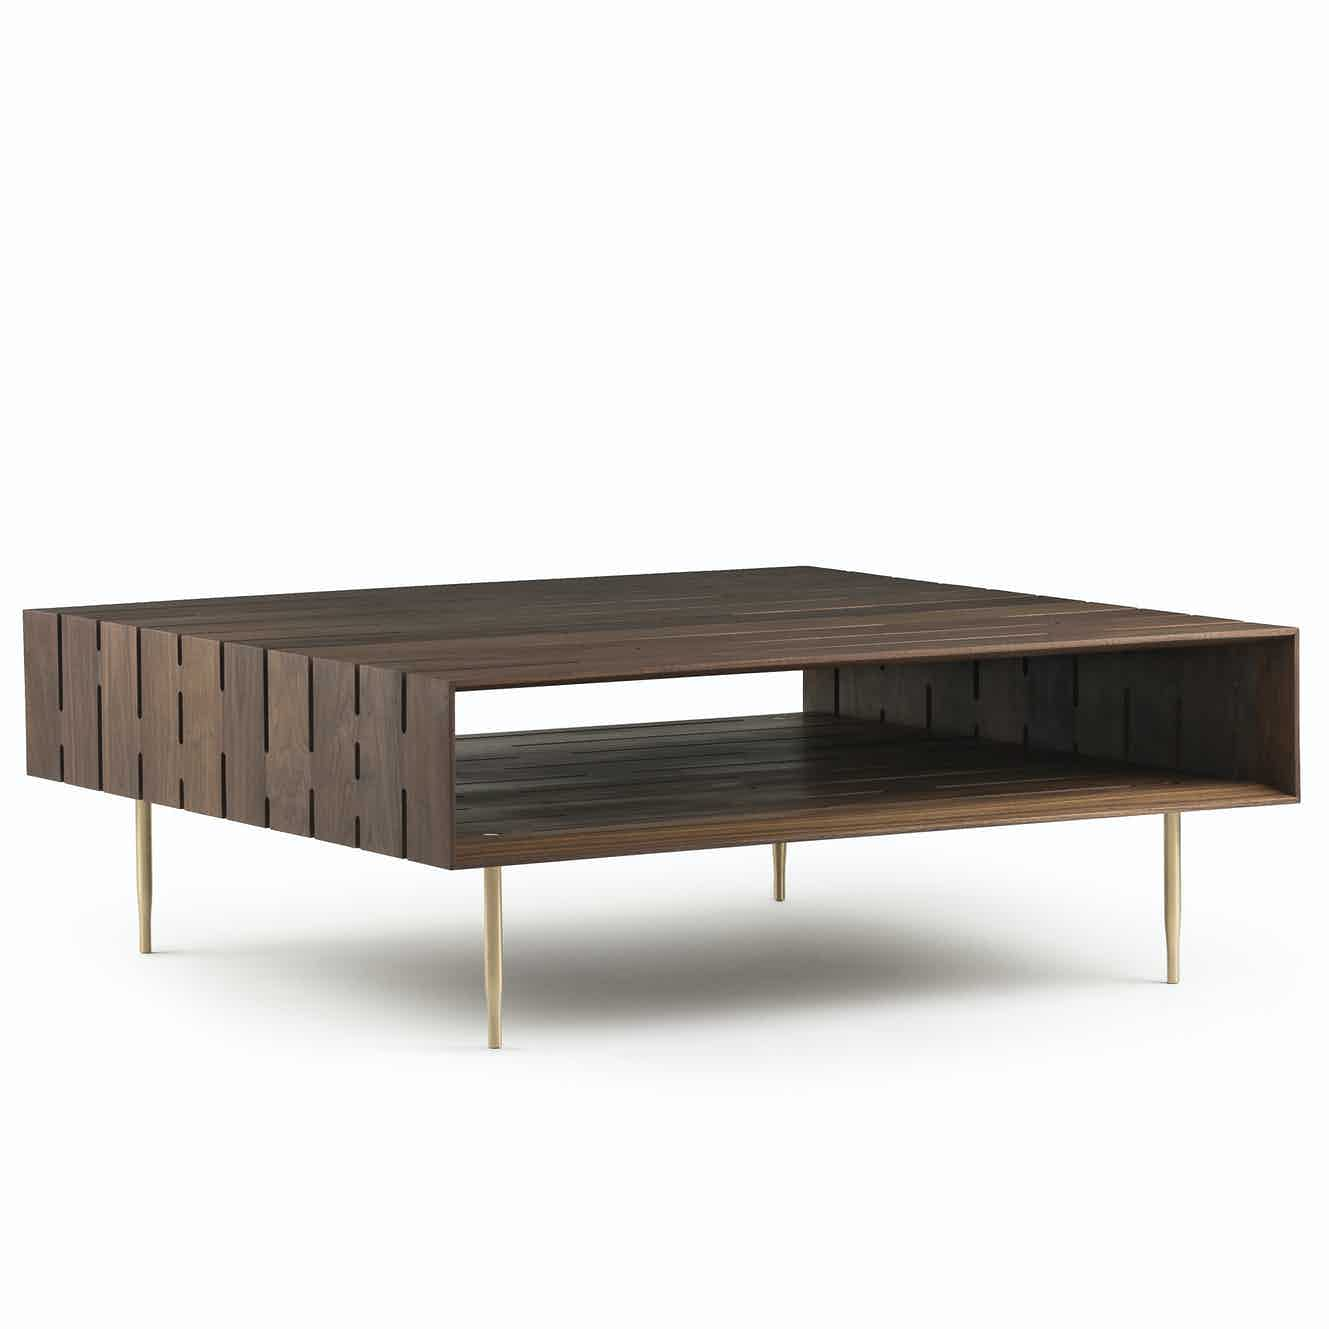 De La Espada Horizon Large Coffee Table By Matthew Hilton